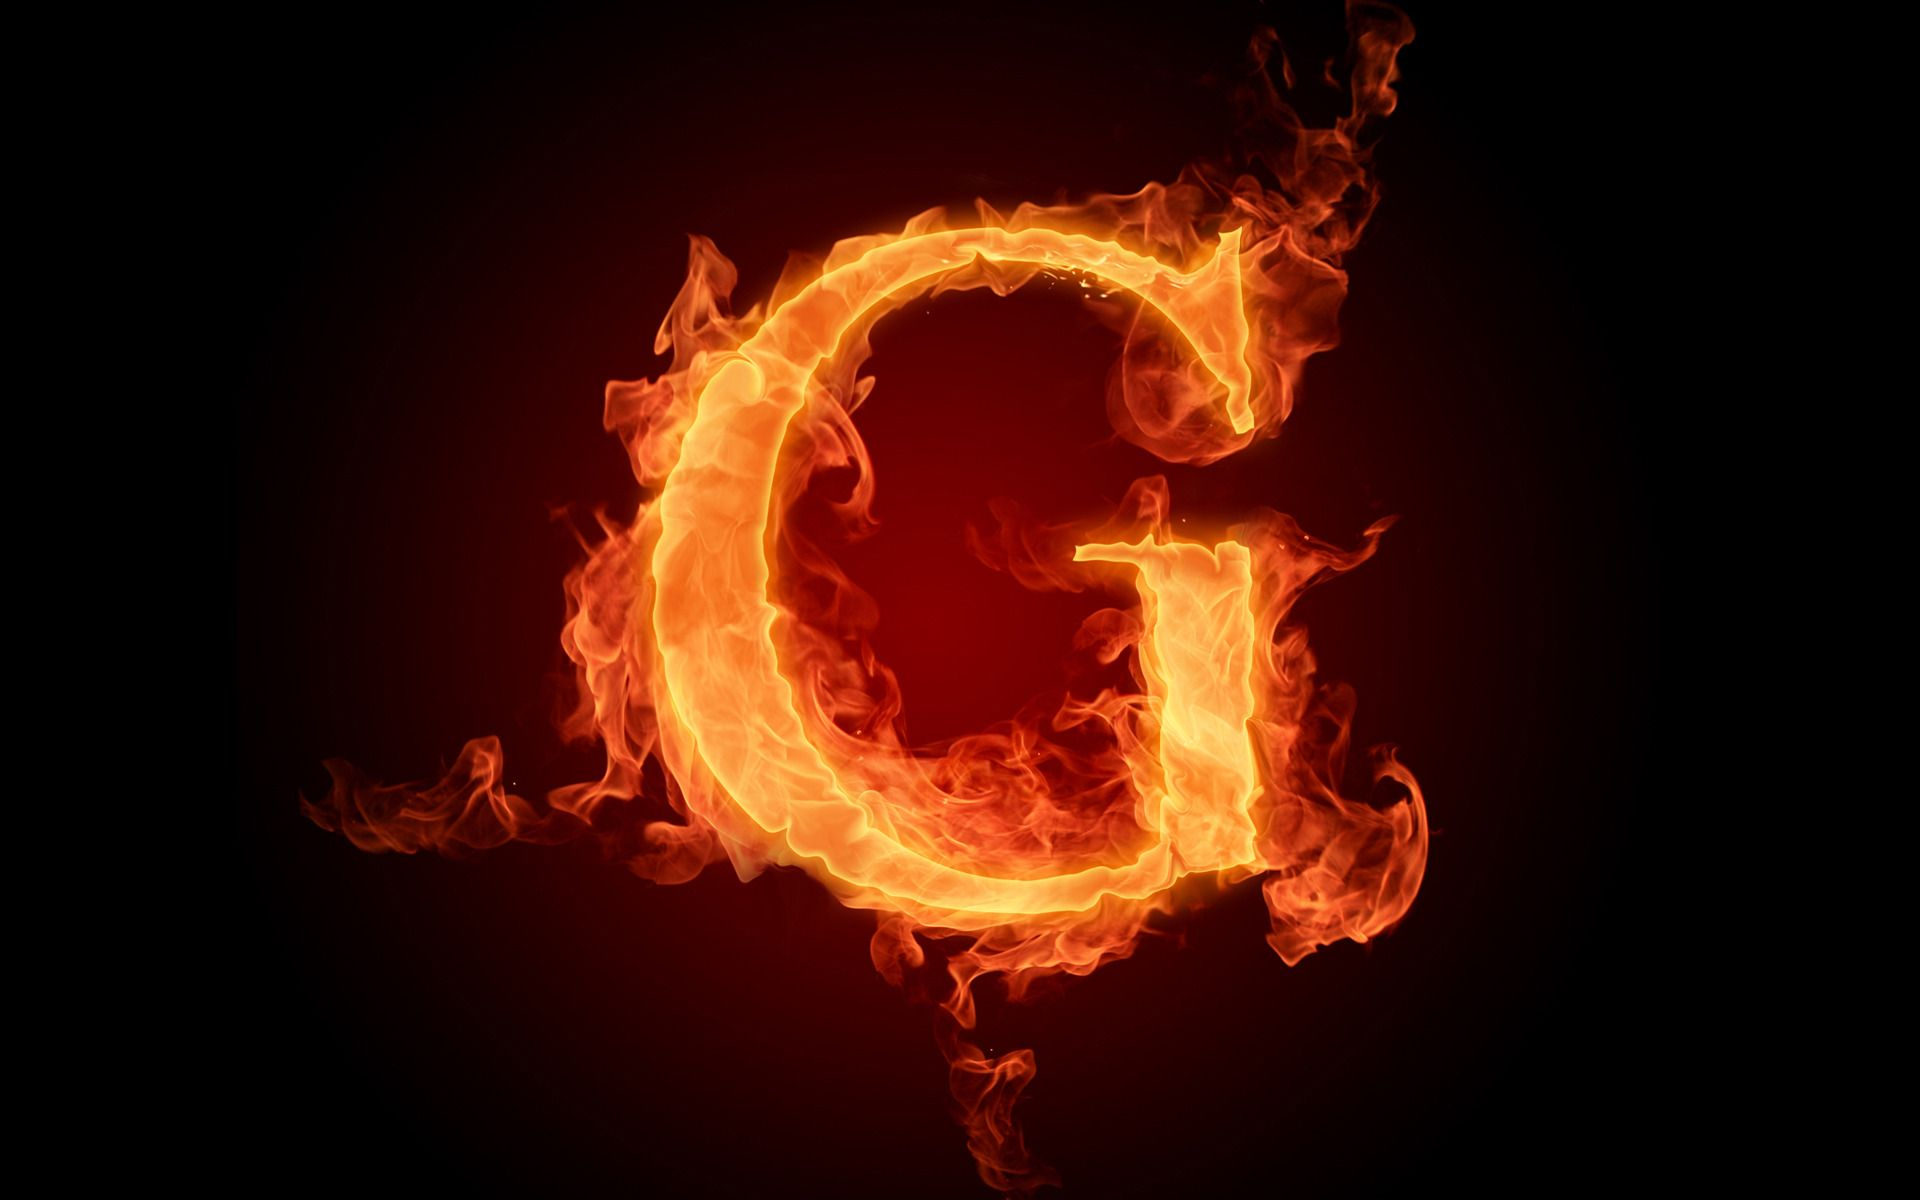 Hd Wallpapers The Fiery English Alphabet Picture G Letter